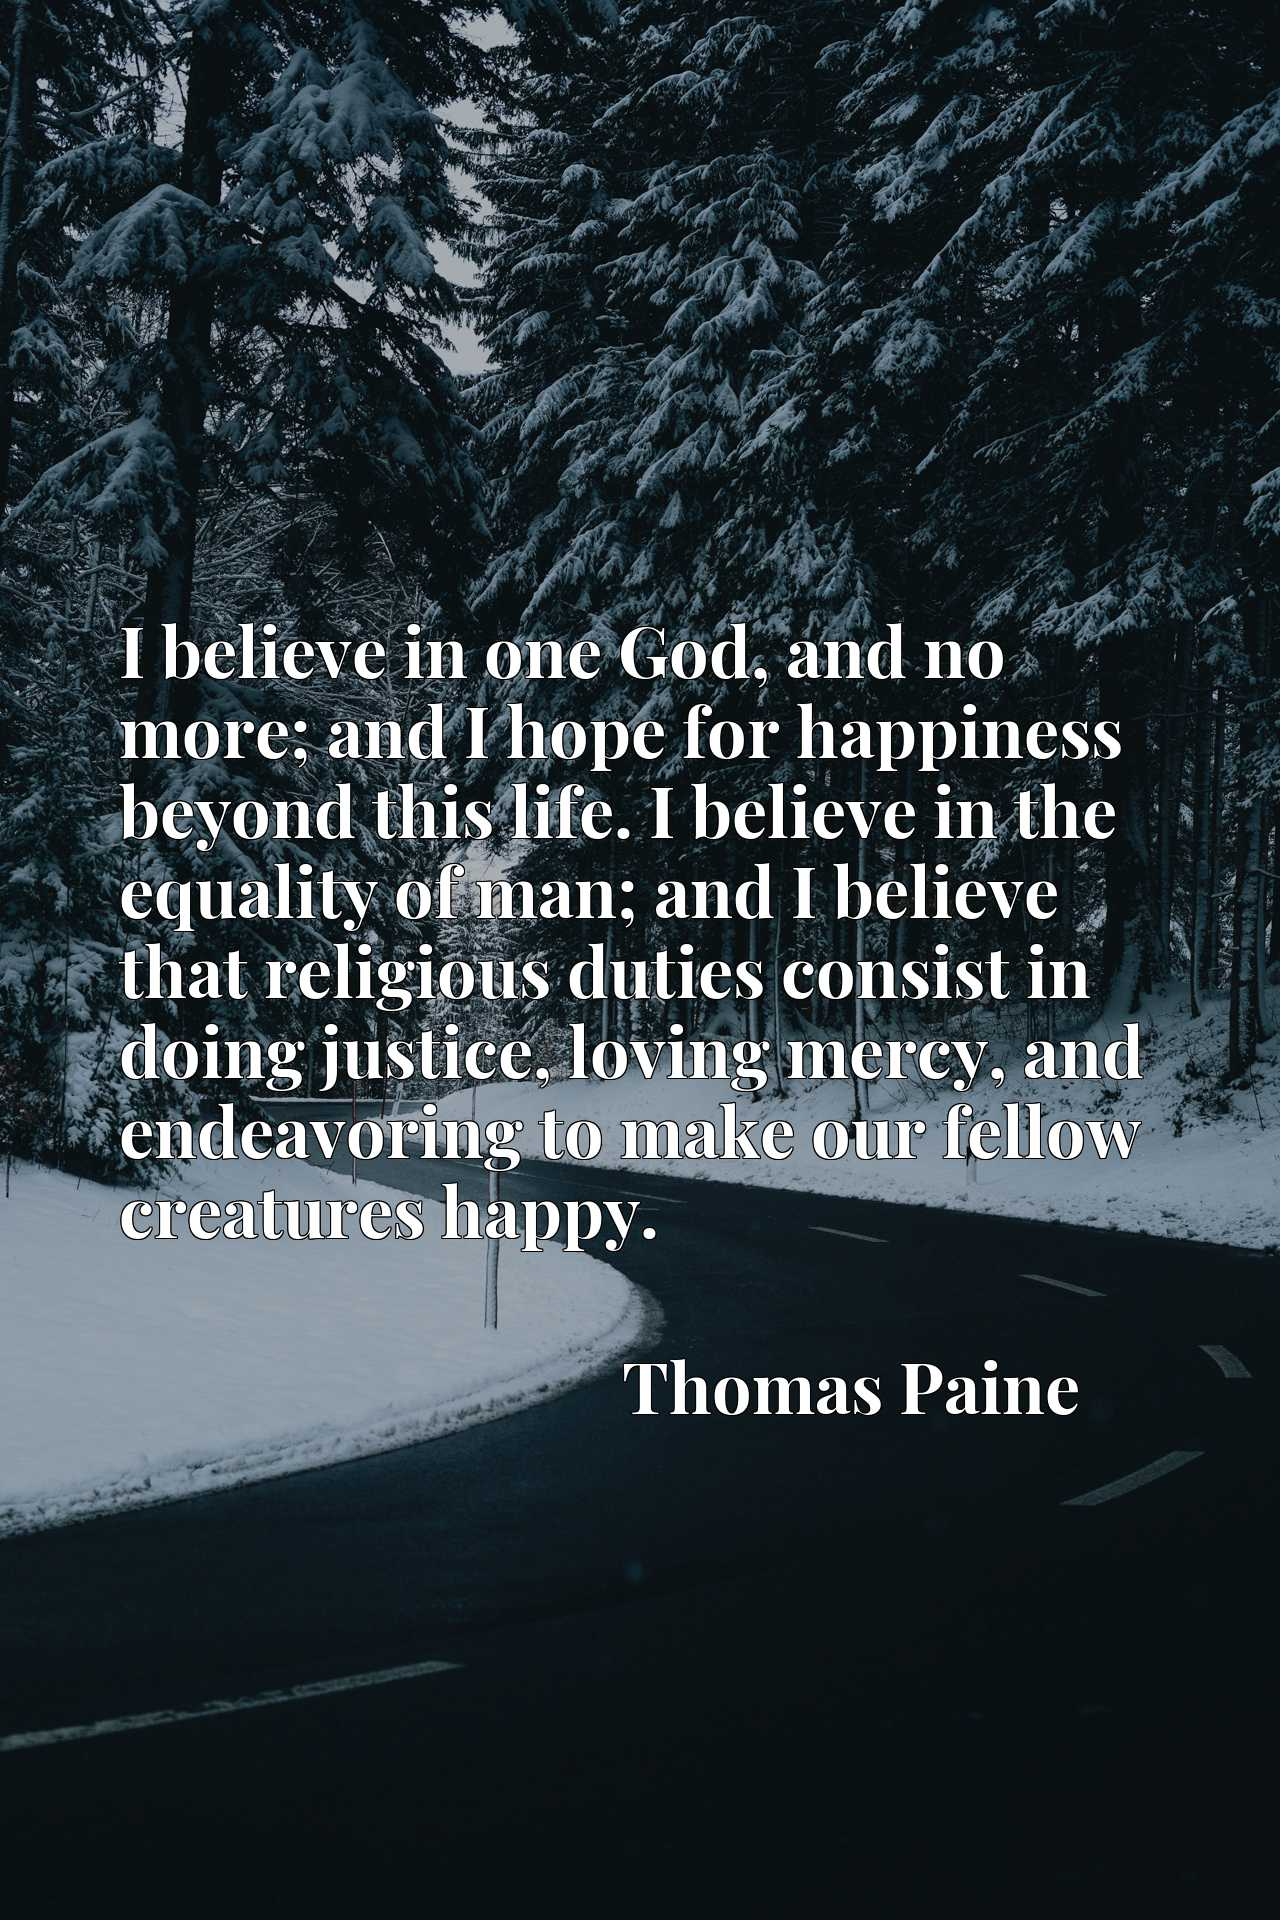 I believe in one God, and no more; and I hope for happiness beyond this life. I believe in the equality of man; and I believe that religious duties consist in doing justice, loving mercy, and endeavoring to make our fellow creatures happy.